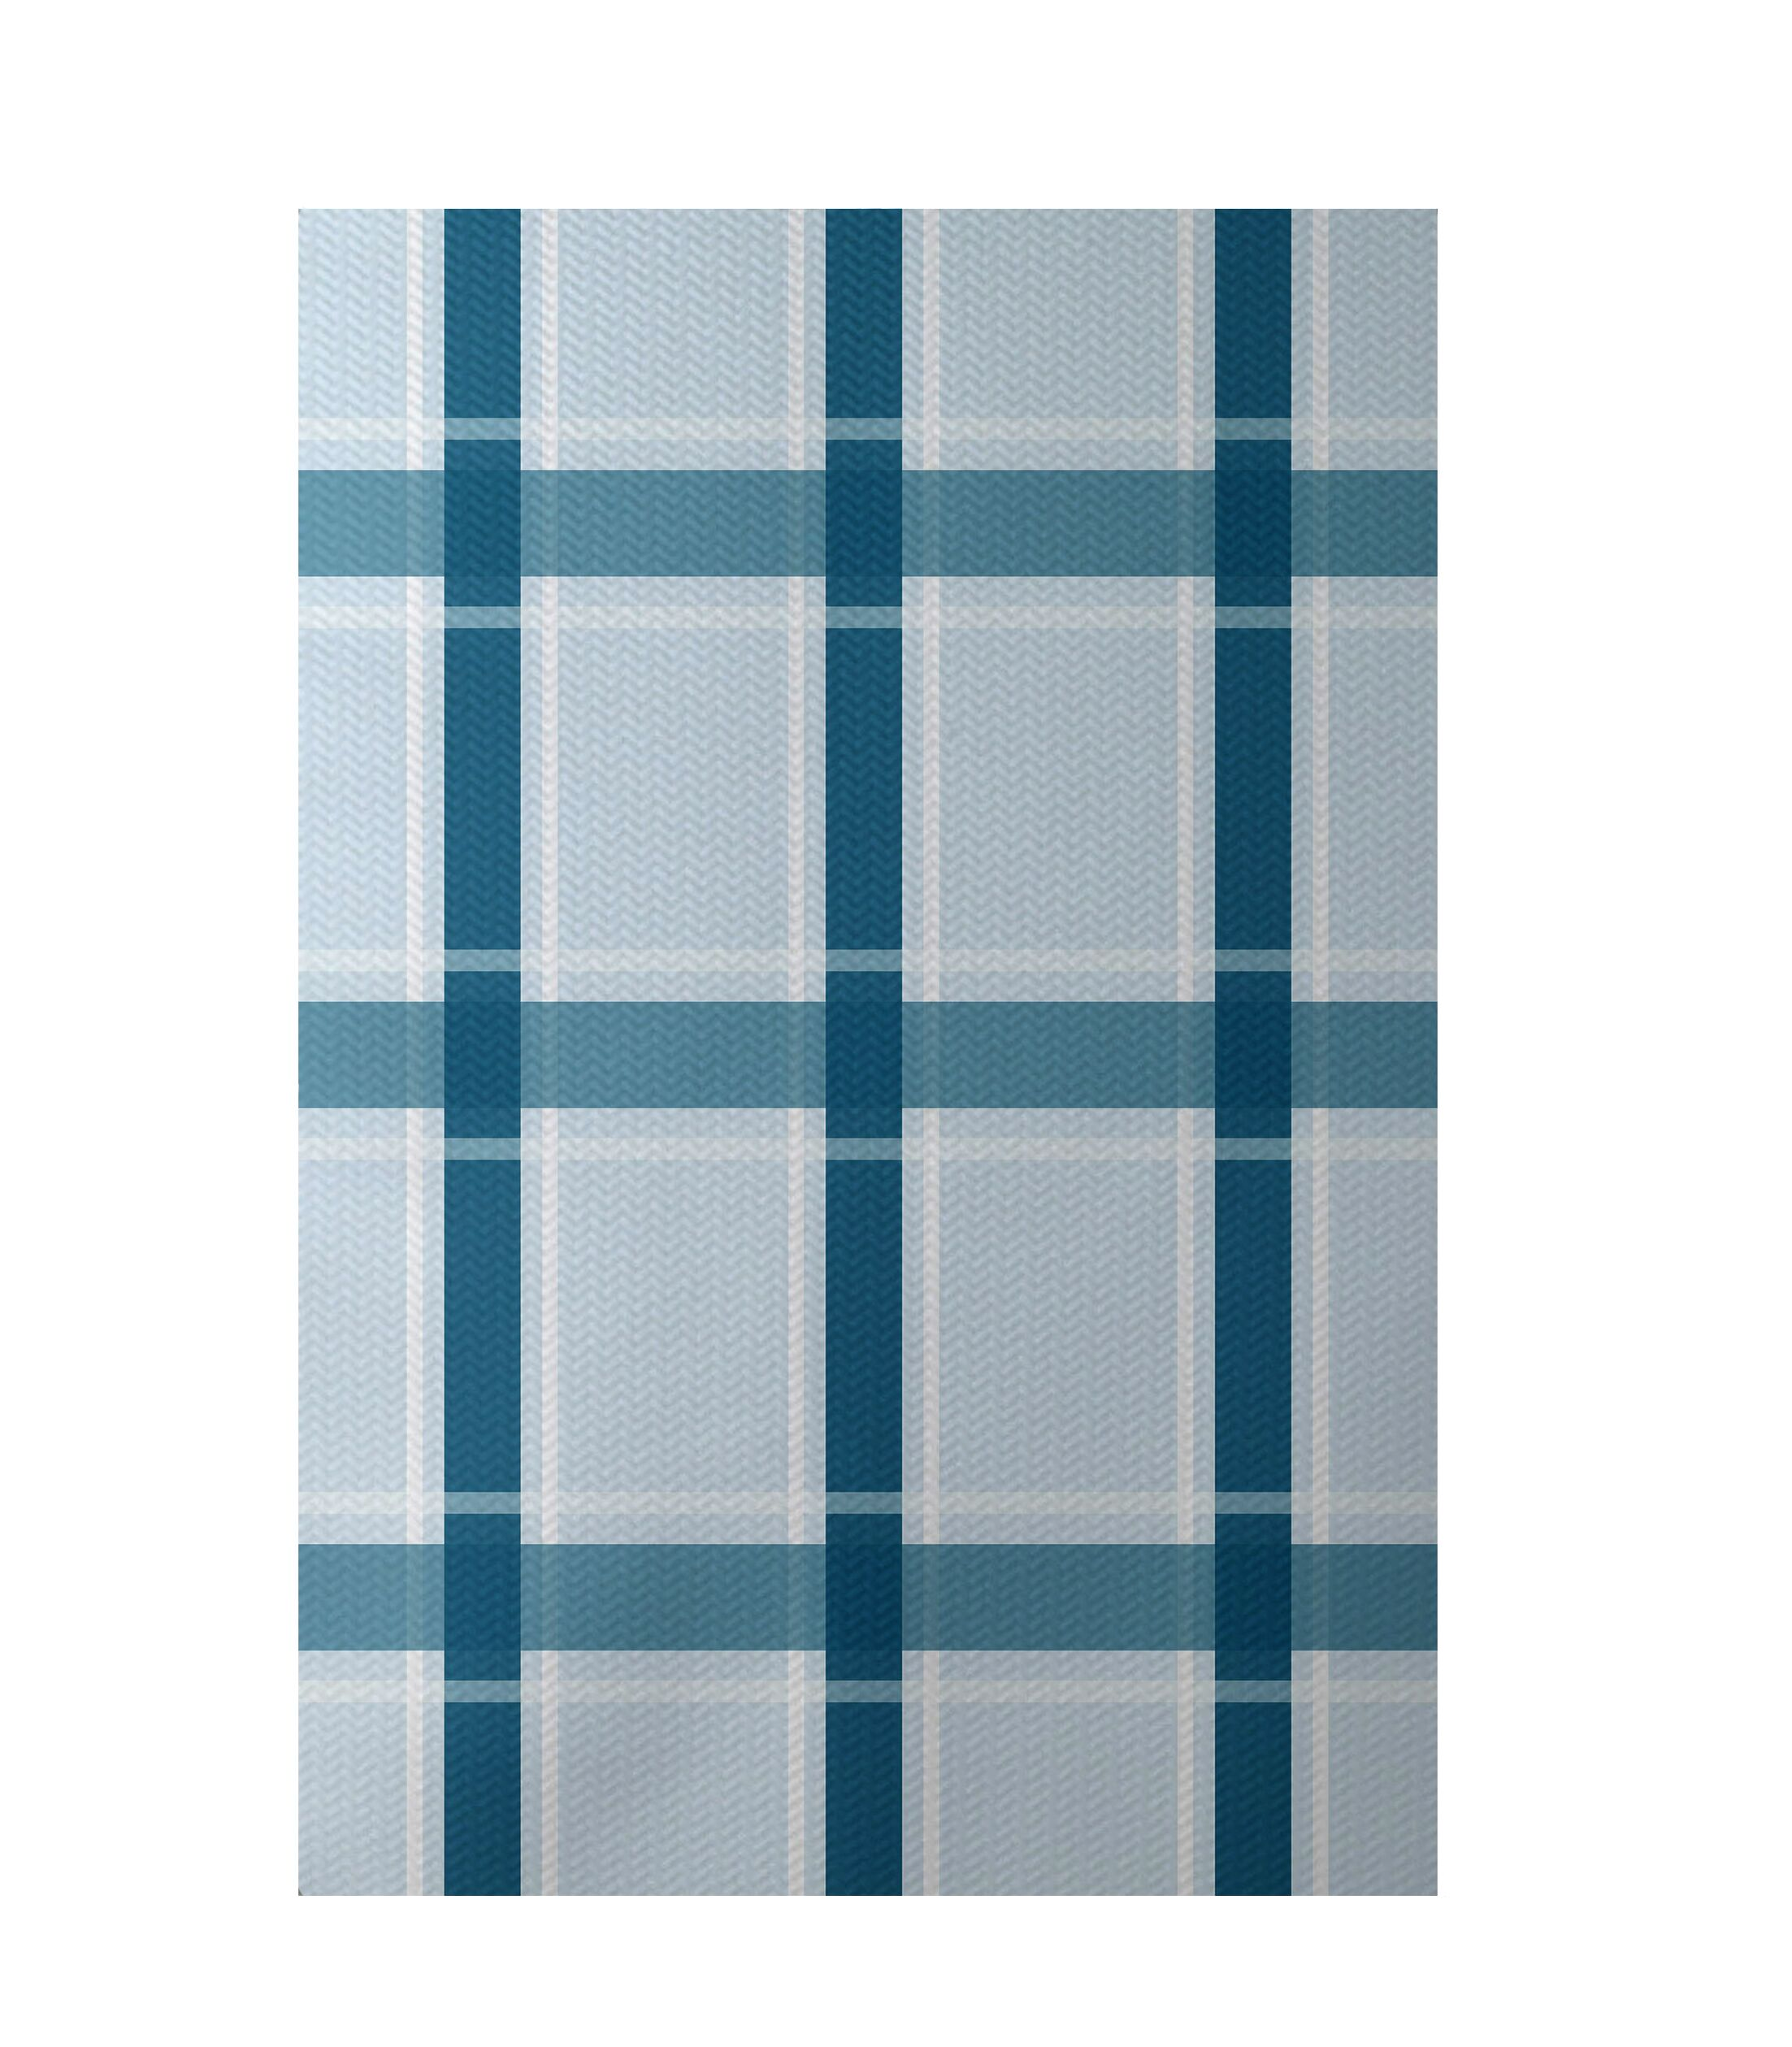 Plaid Hand-Woven Light Blue/Teal Indoor/Outdoor Area Rug Rug Size: Rectangle 4' x 6'